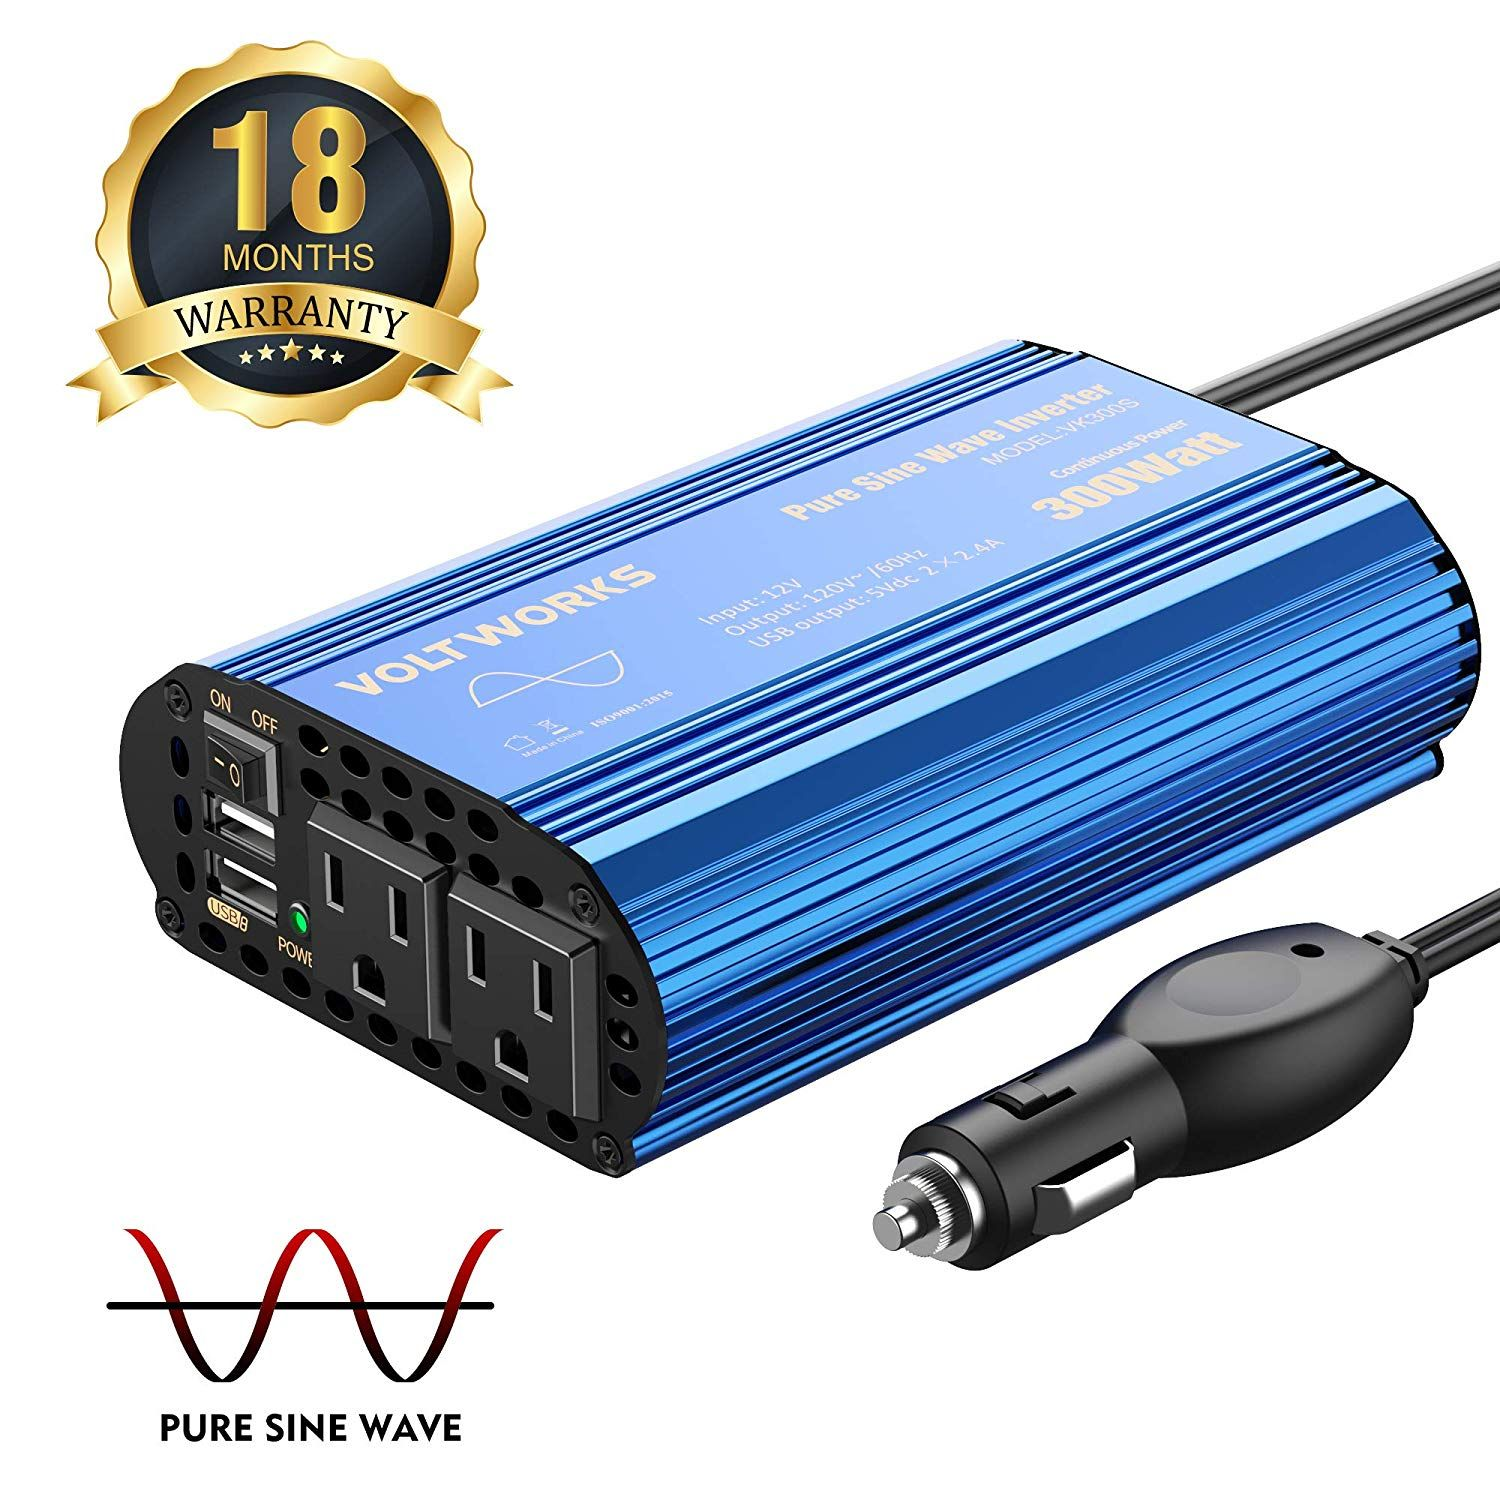 300w Pure Sine Wave Power Inverter For Car Truck Rv Adapter Dc 12v To Ac 110v 120v With Dual 4 8a Usb Port And Ac Outlets Power Inverters Sine Wave Cars Trucks